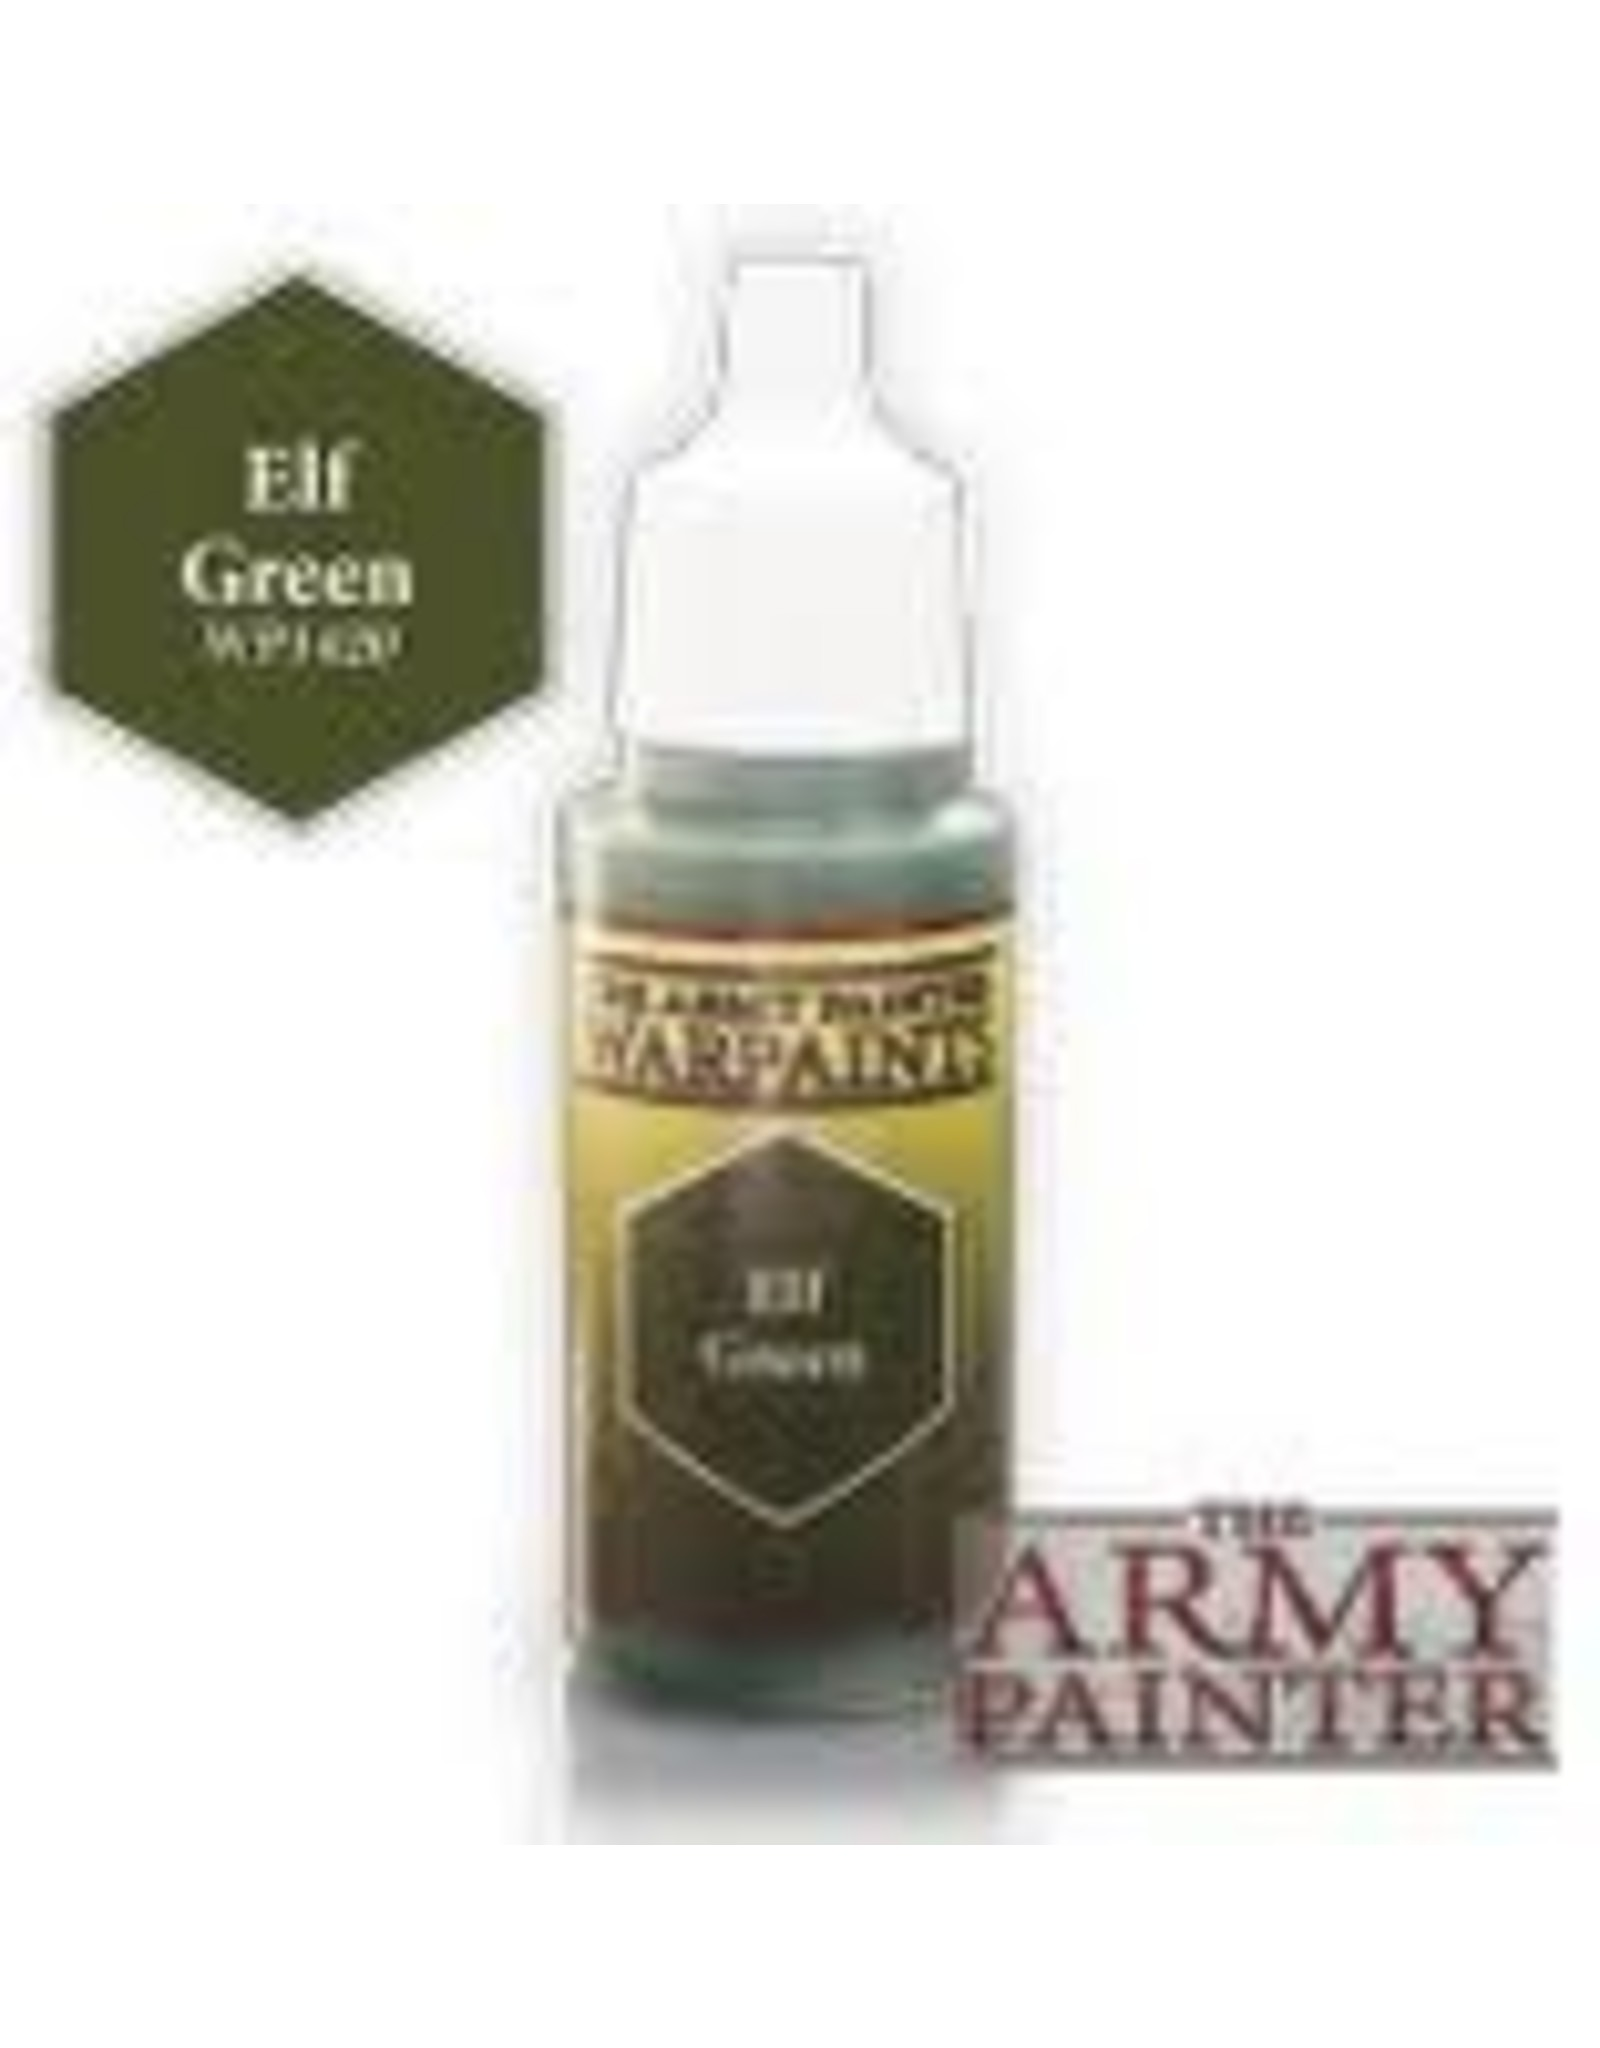 Army Painter Army Painter: Elf Green